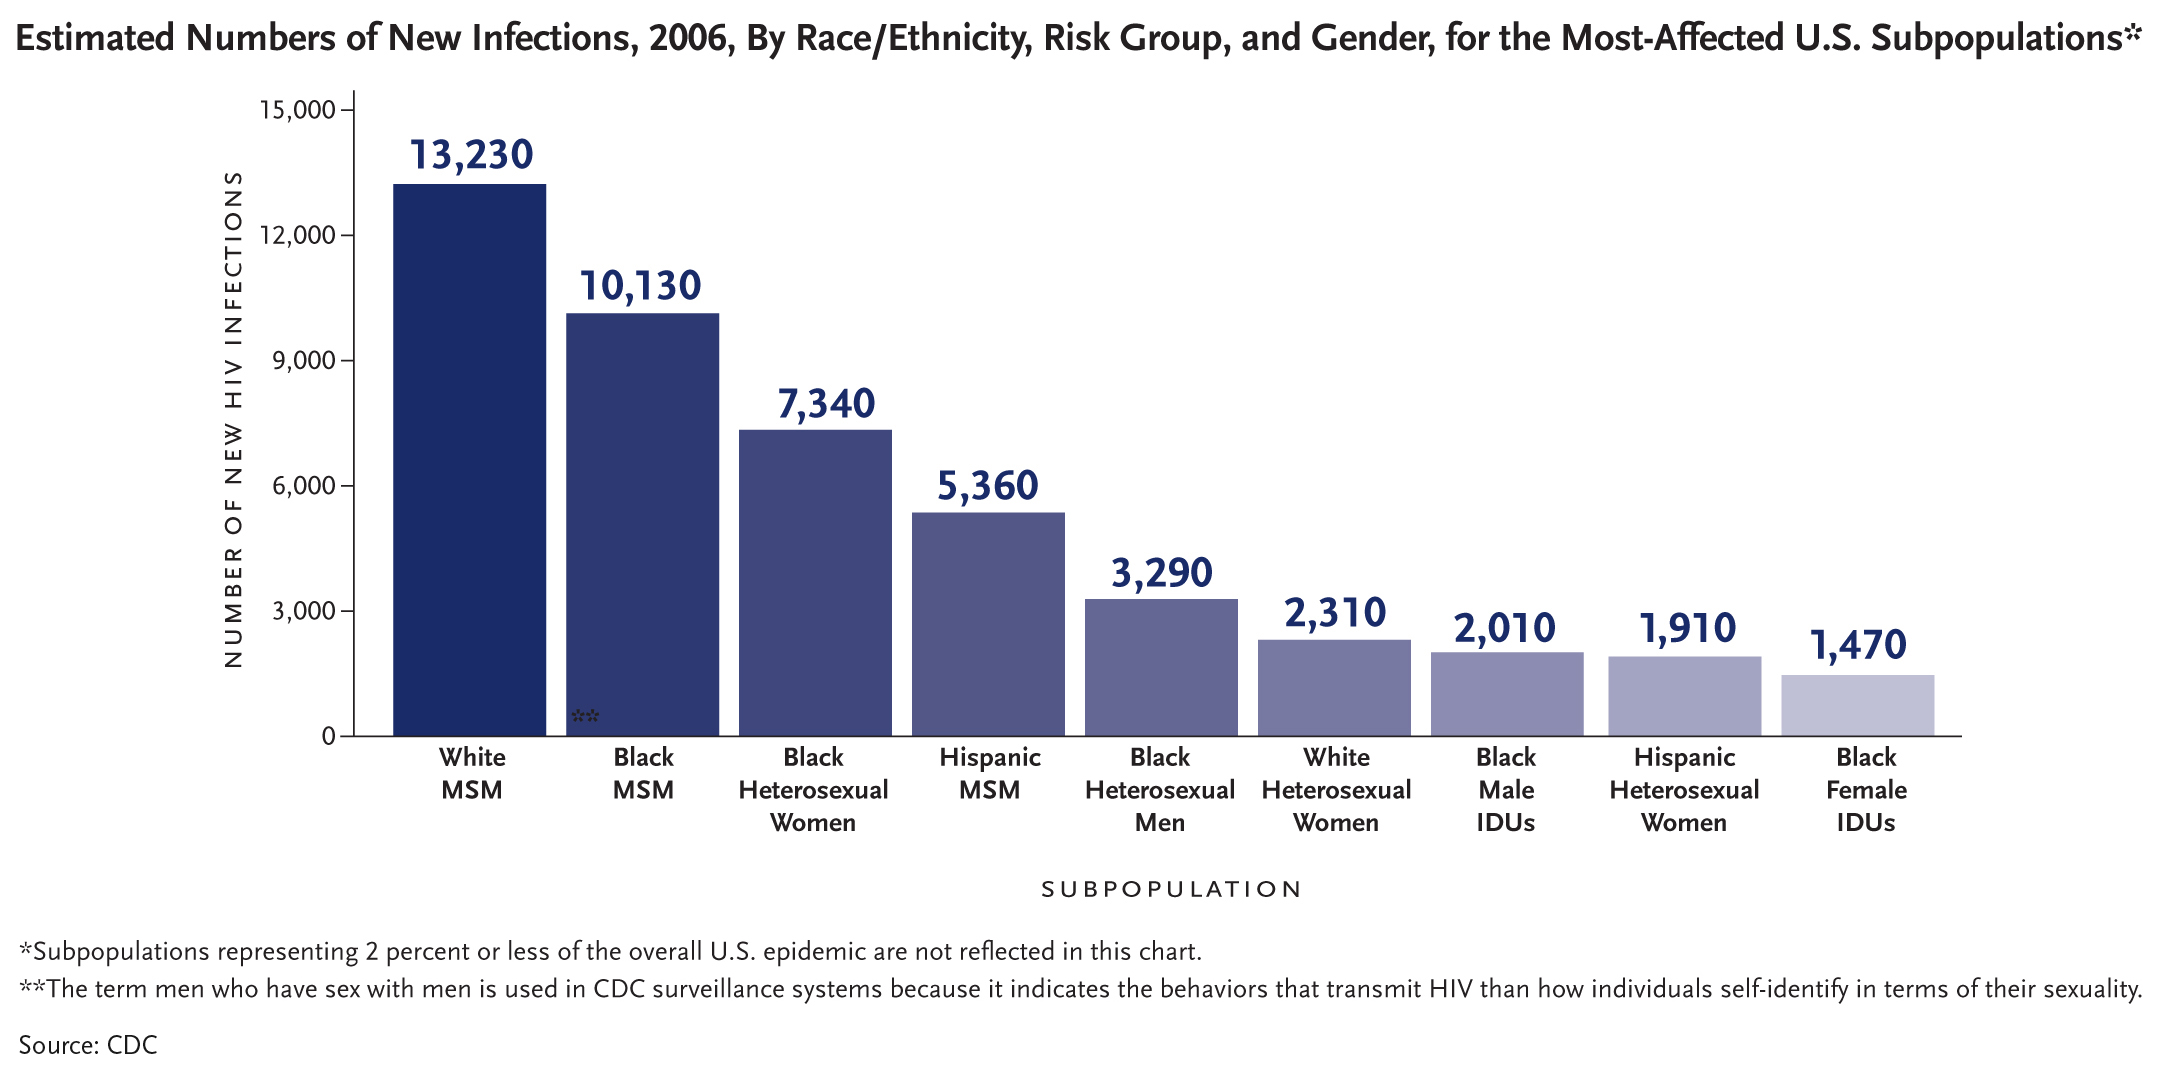 hiv in america is the epidemic While the hiv epidemic in the us has slowed, it remains a serious problem in many african-american communities in the southern states.